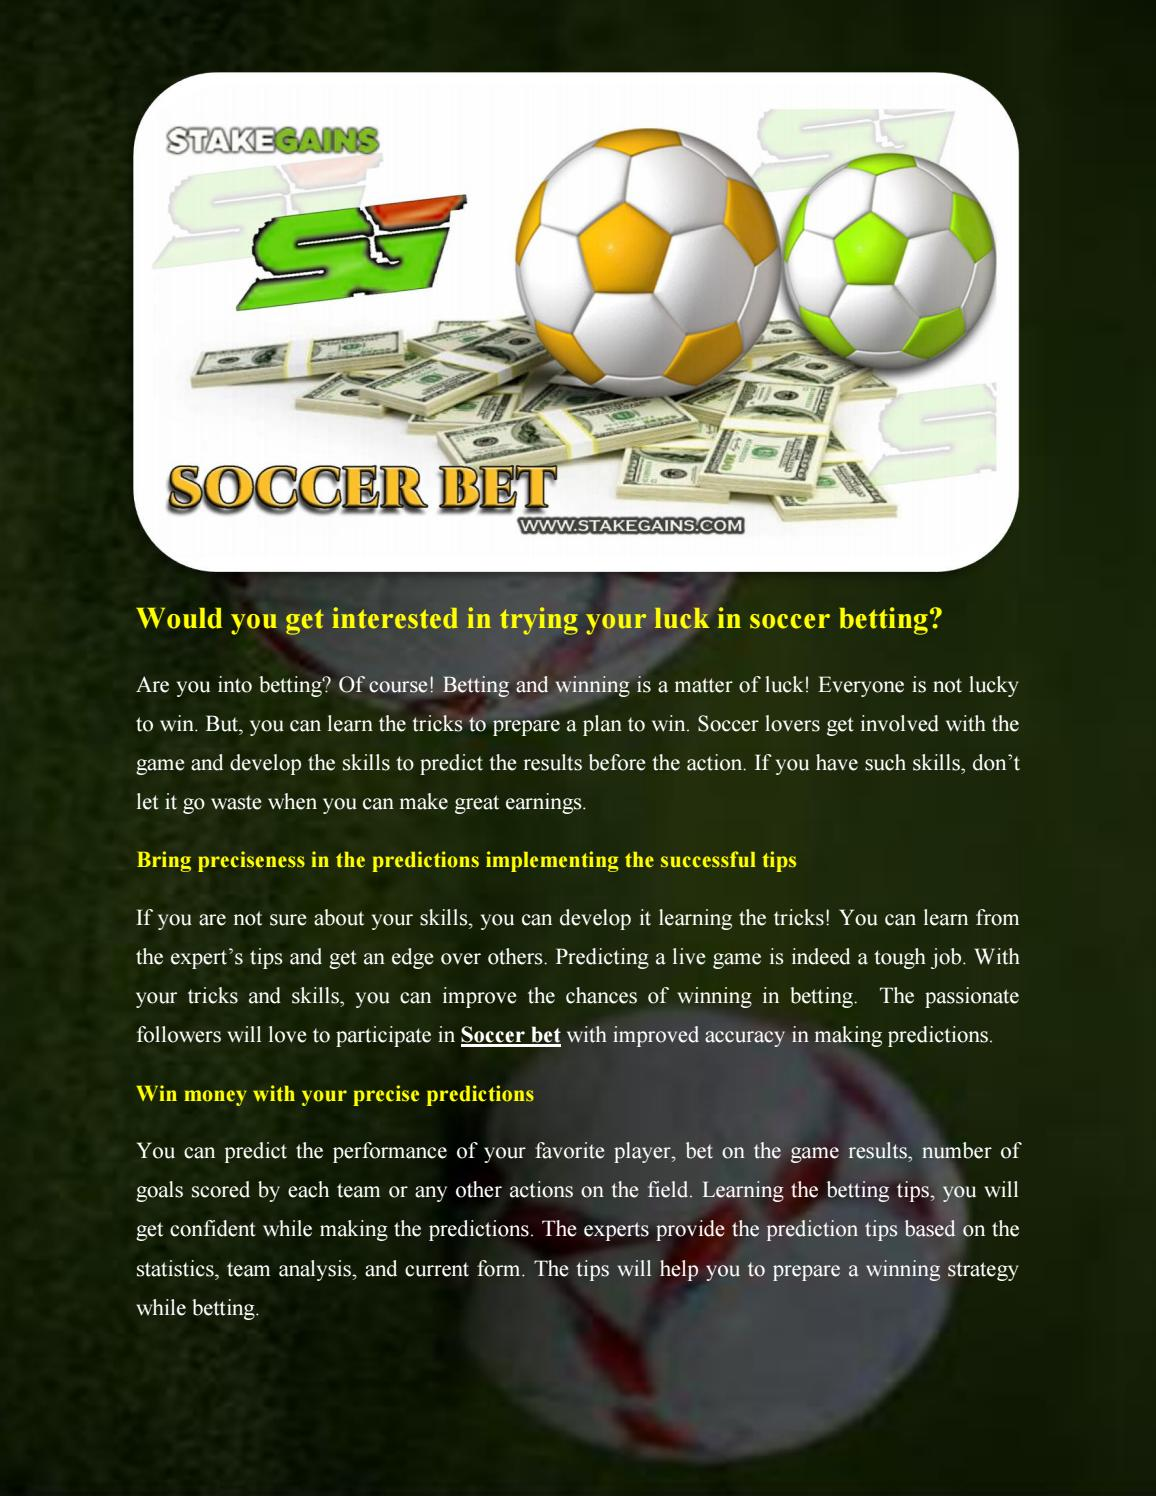 Soccer betting tips by stakegains1 - issuu